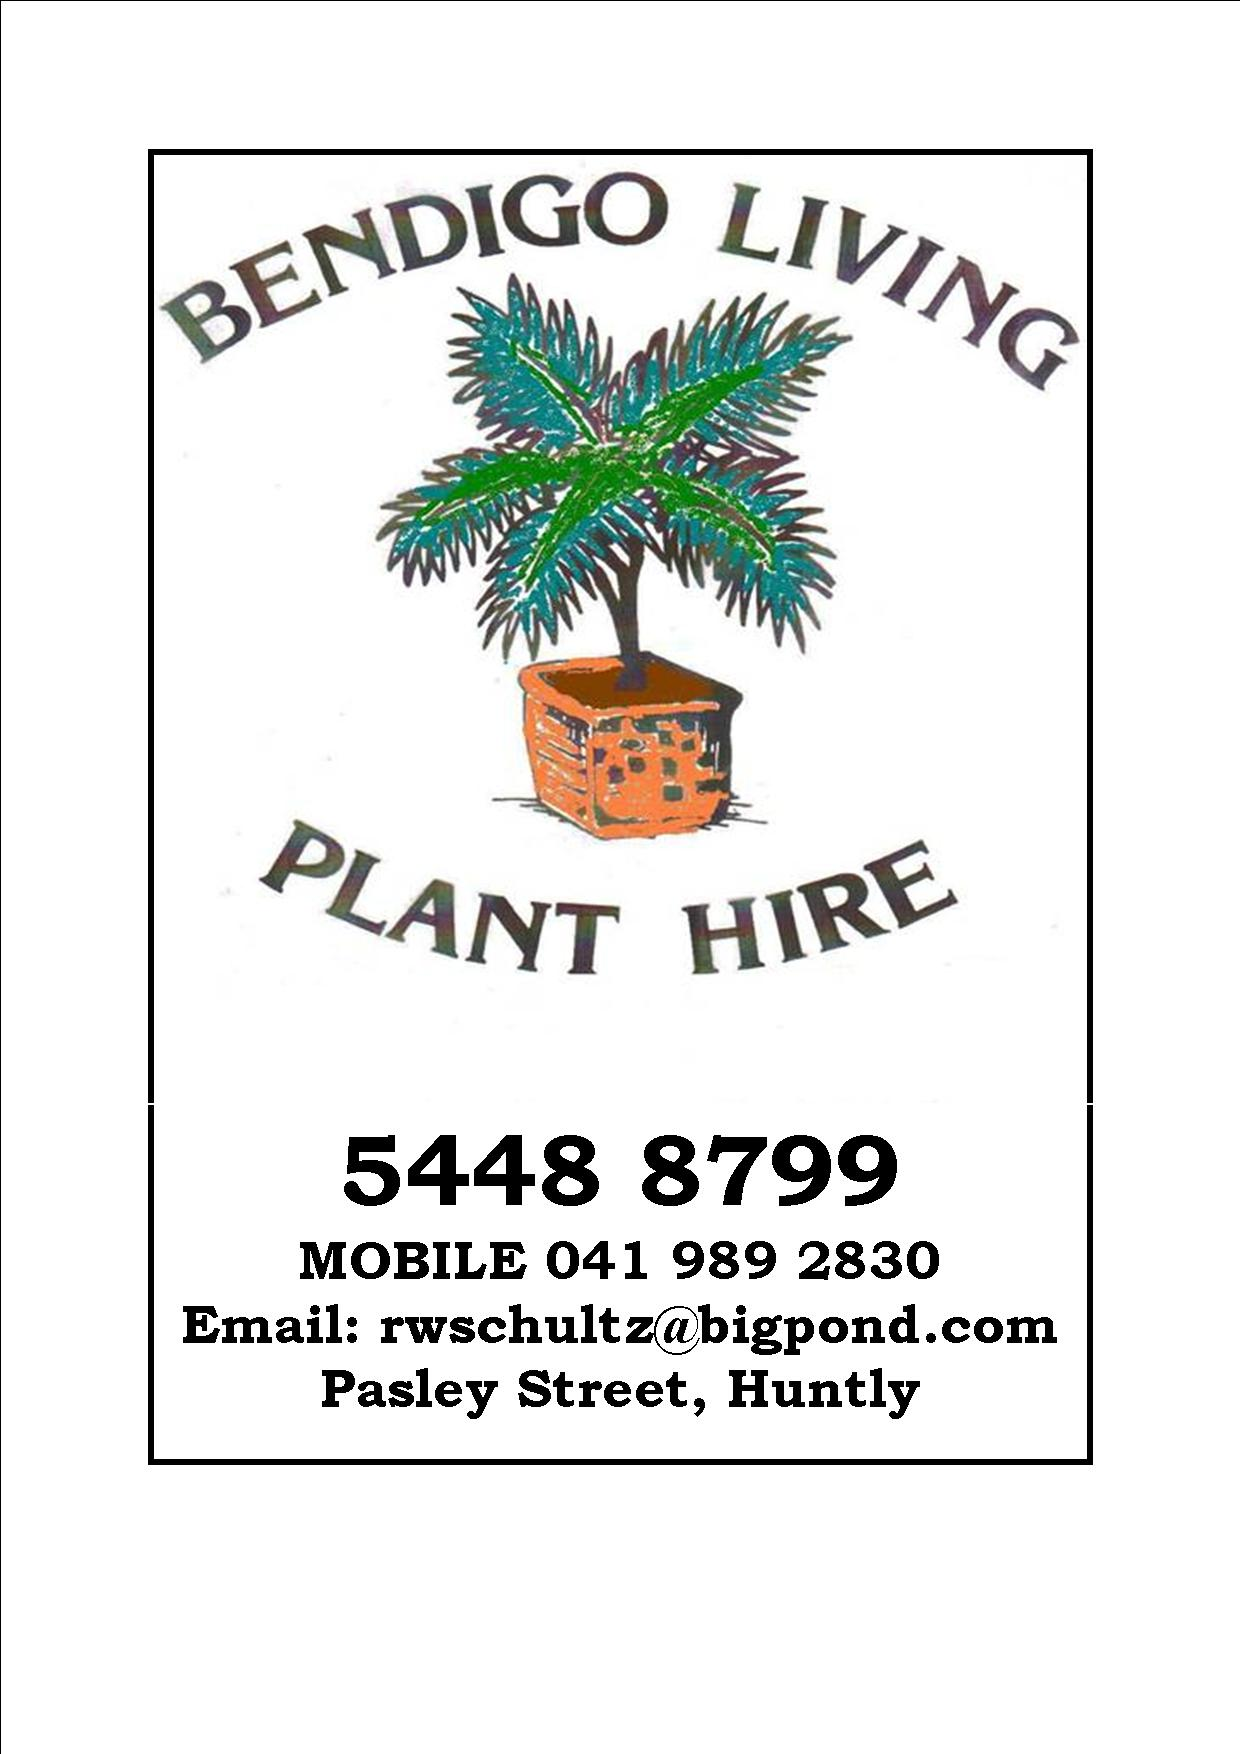 Bendigo Living Plant Hire